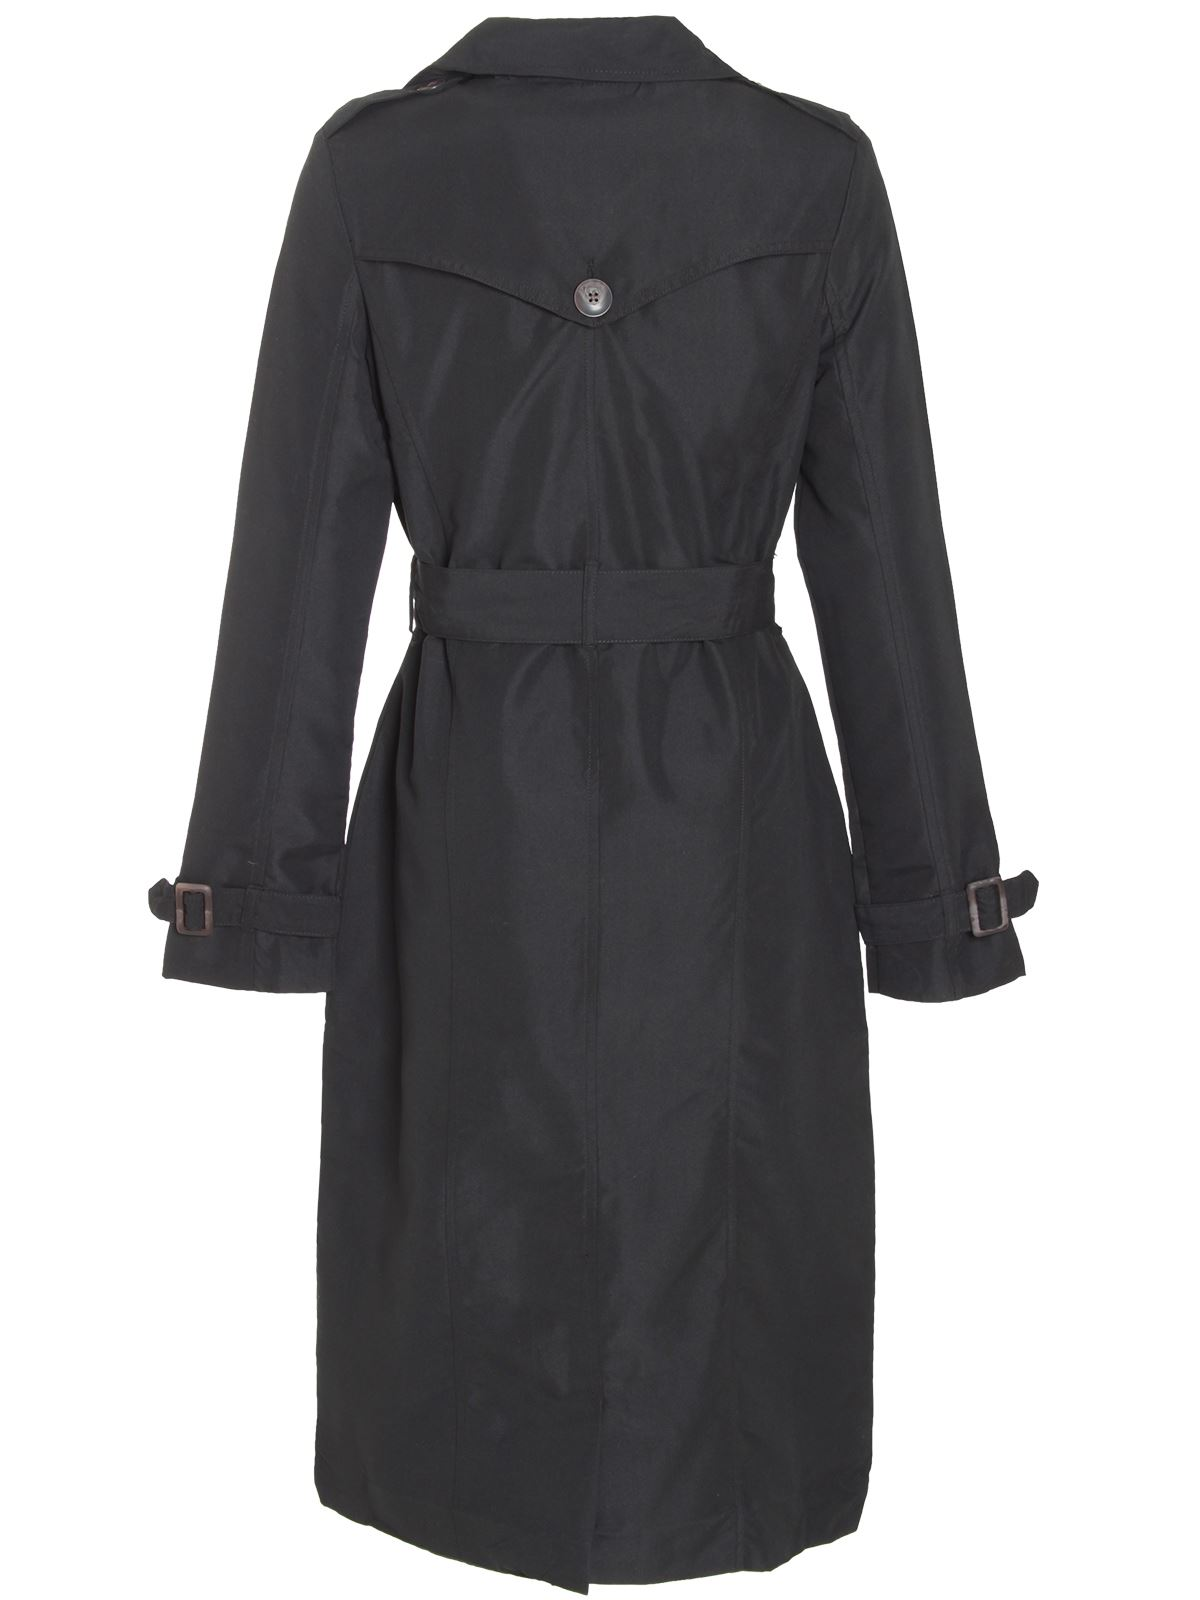 Womens-Ladies-Trench-Mac-Coat-Double-Breasted-Buckle-Belted-Maxi-Jacket